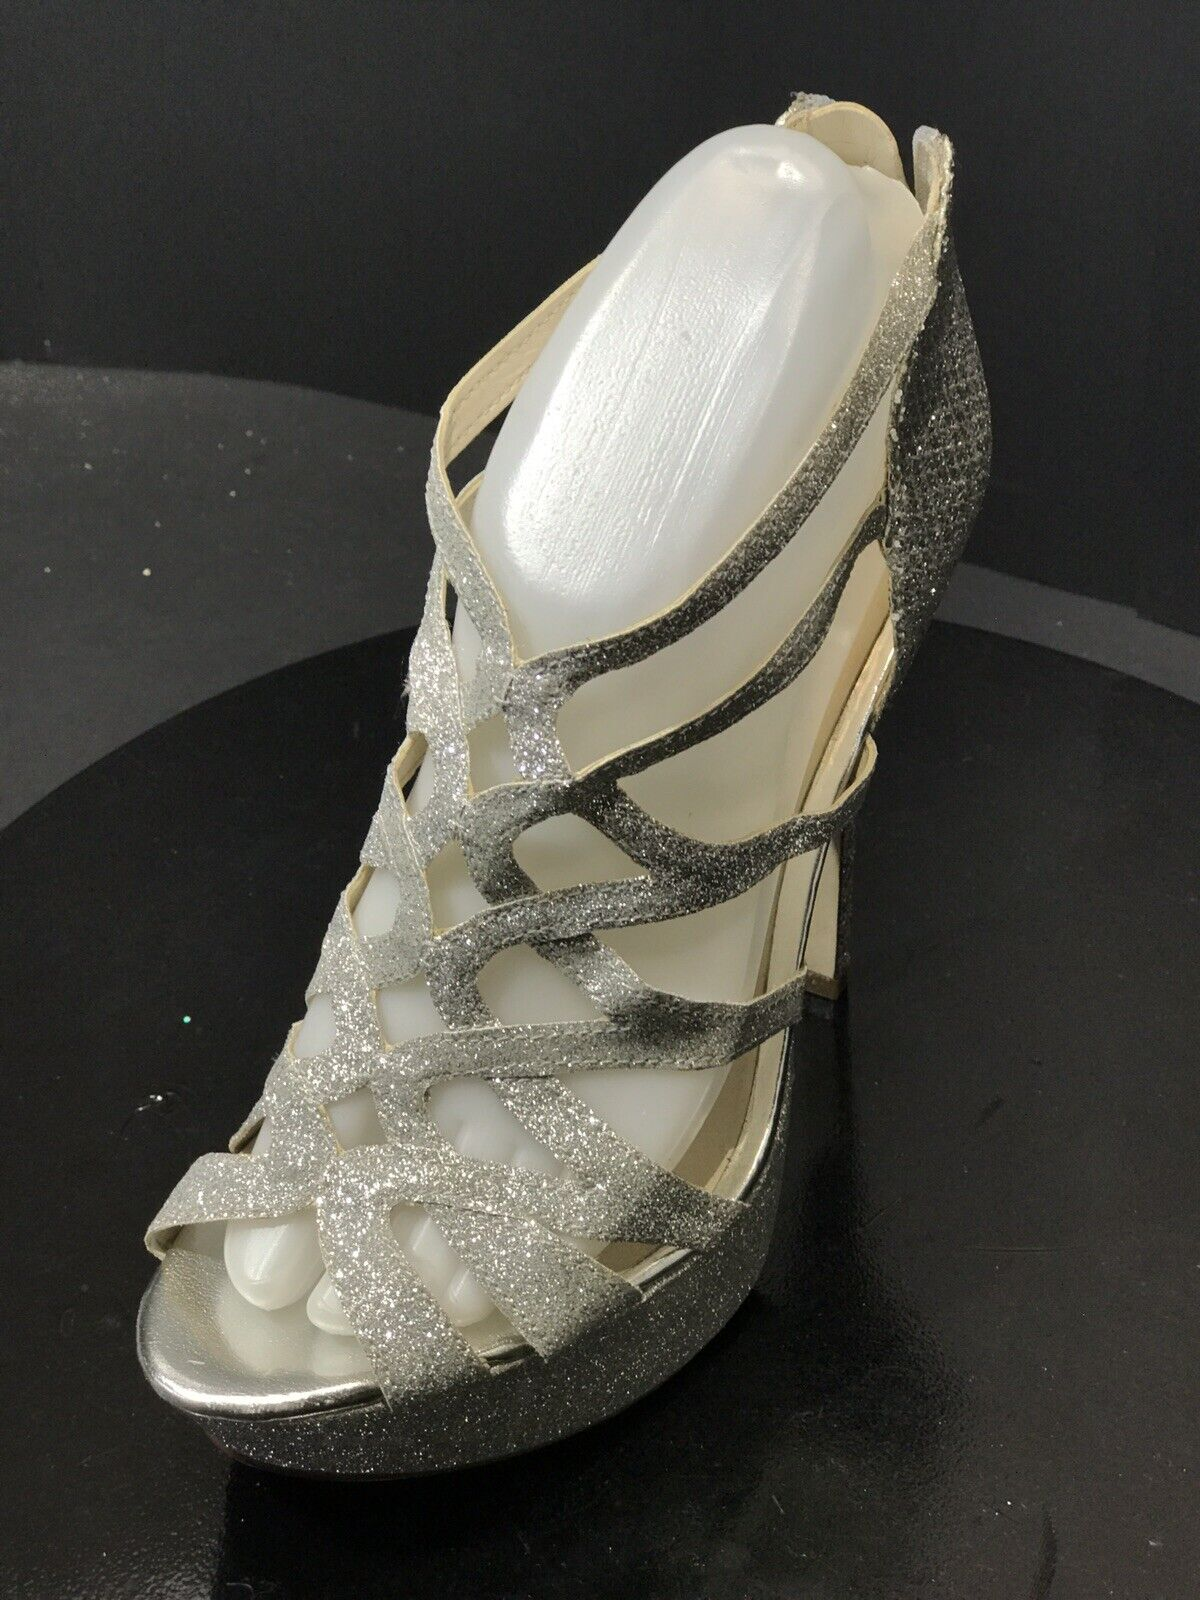 New Aldo Women's Metallic Silver Sparkly Strappy High Heels shoes Size US 7.5 M